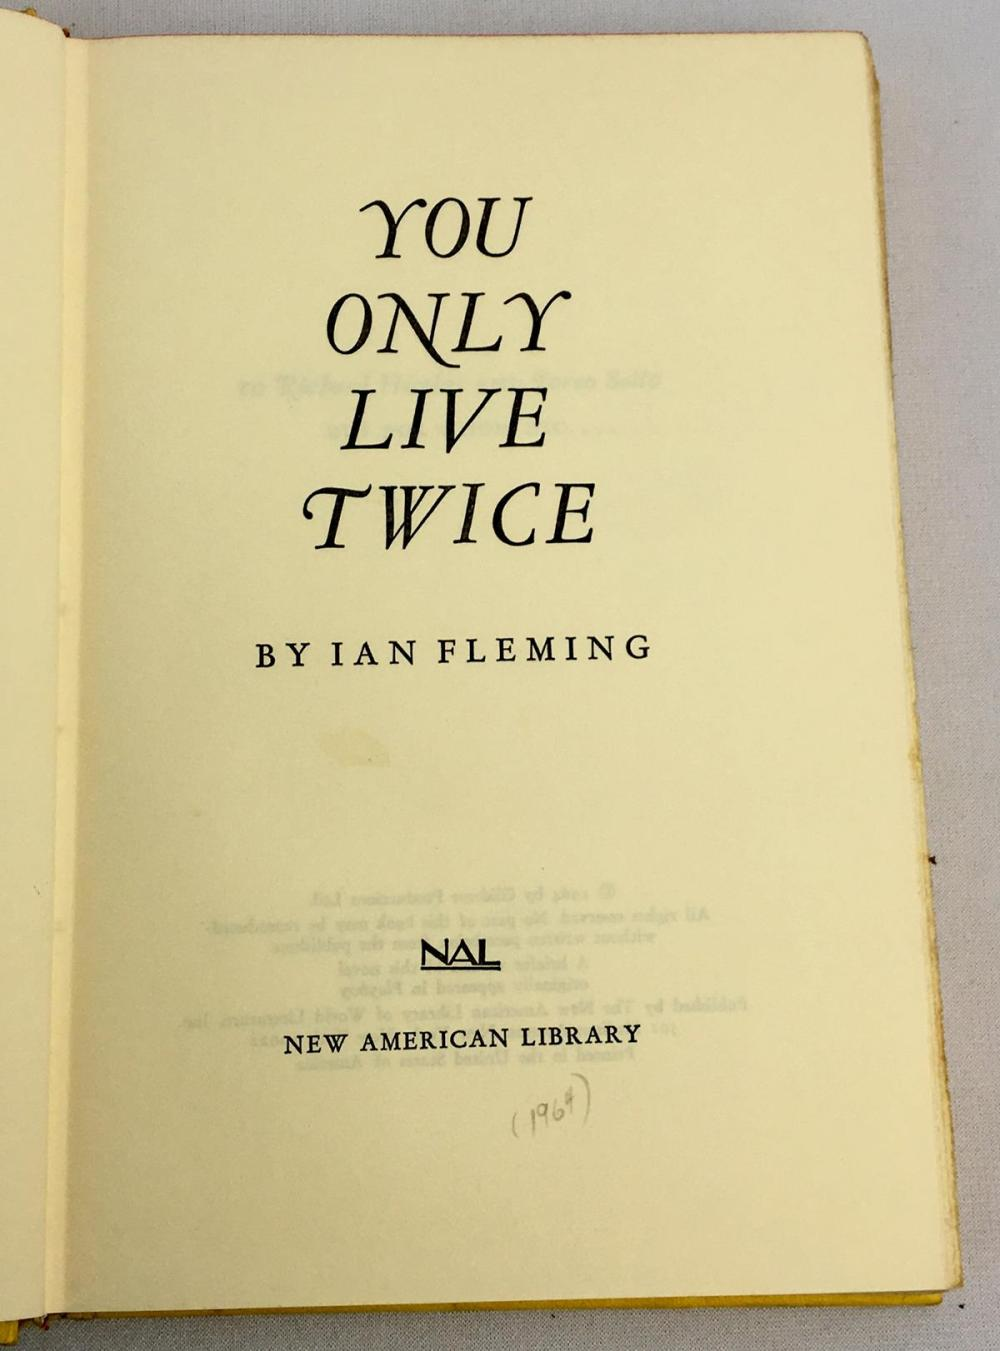 1964 You Only Live Twice: A James Bond Novel by Ian Fleming w/ Dust Jacket